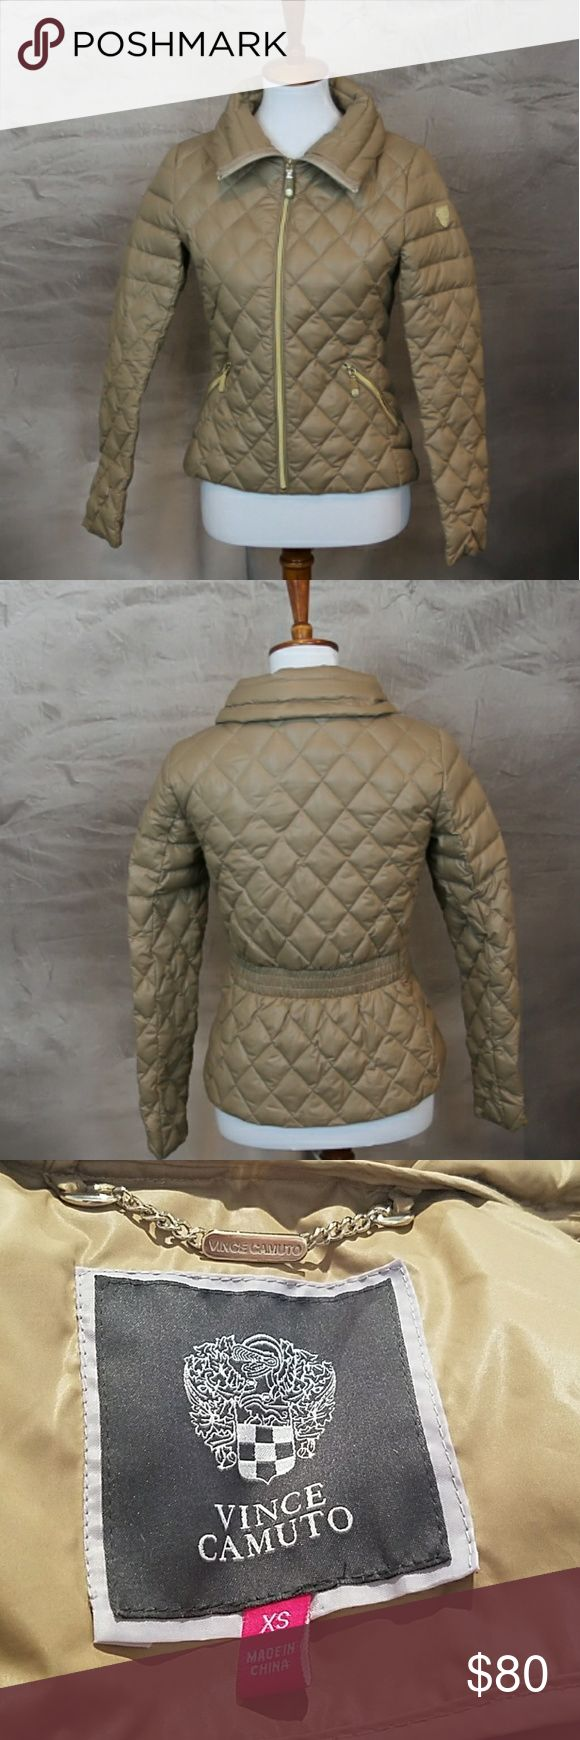 Vince Camuto down feather puffer jacket coat XS Vince Camuto down feather puffer jacket coat XS. Quilted. Tan with gold hardware. Excellent, like new, condition. Jackets & Coats Puffers